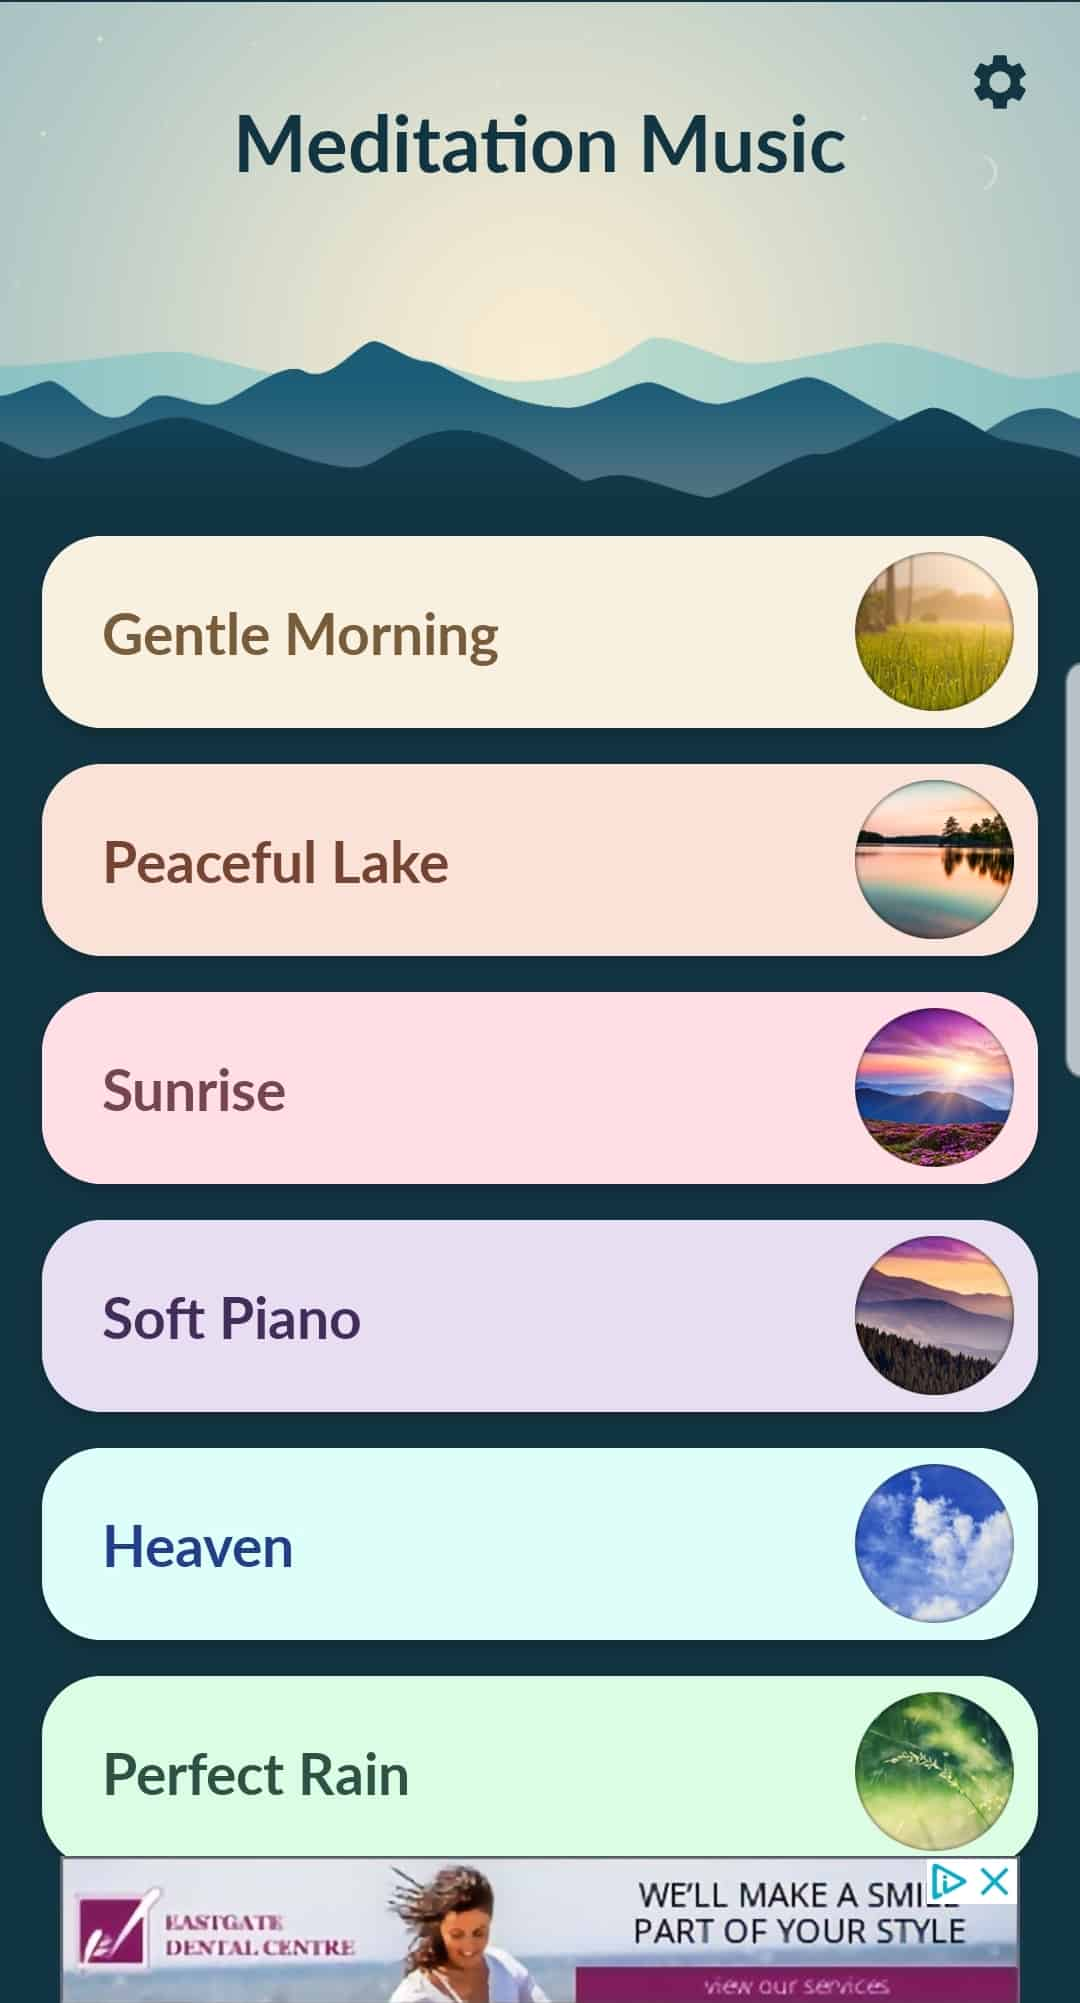 Meditation Music application screenshot